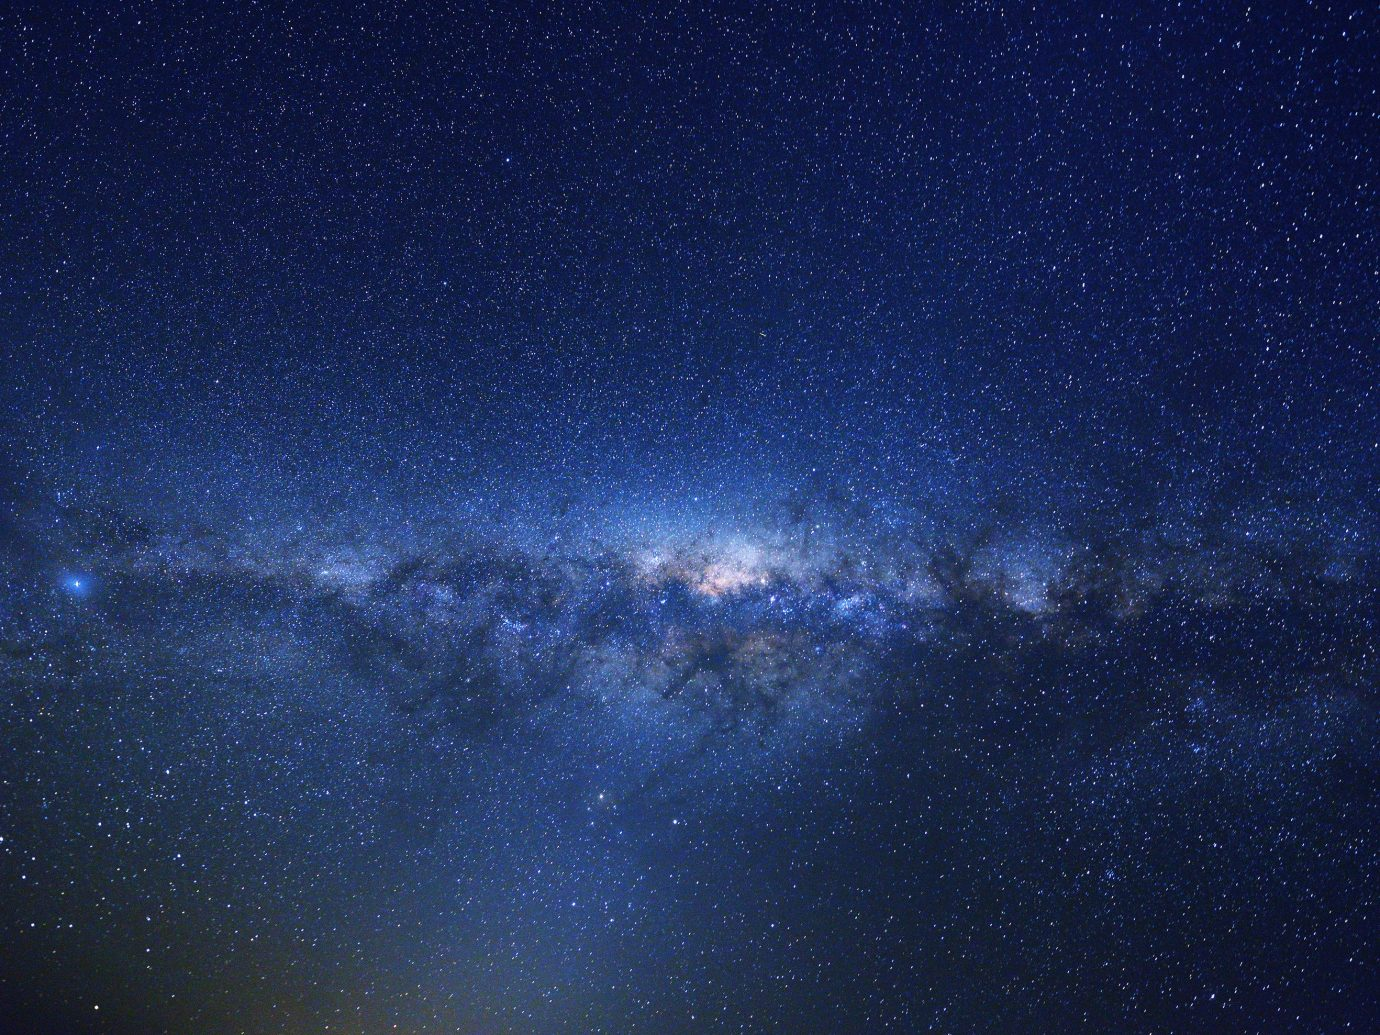 Hotels News Offbeat galaxy atmosphere outdoor sky astronomical object spiral galaxy Nature universe atmosphere of earth Night Sky night outer space phenomenon star milky way astronomy darkness nebula space computer wallpaper outdoor object midnight constellation comet wave